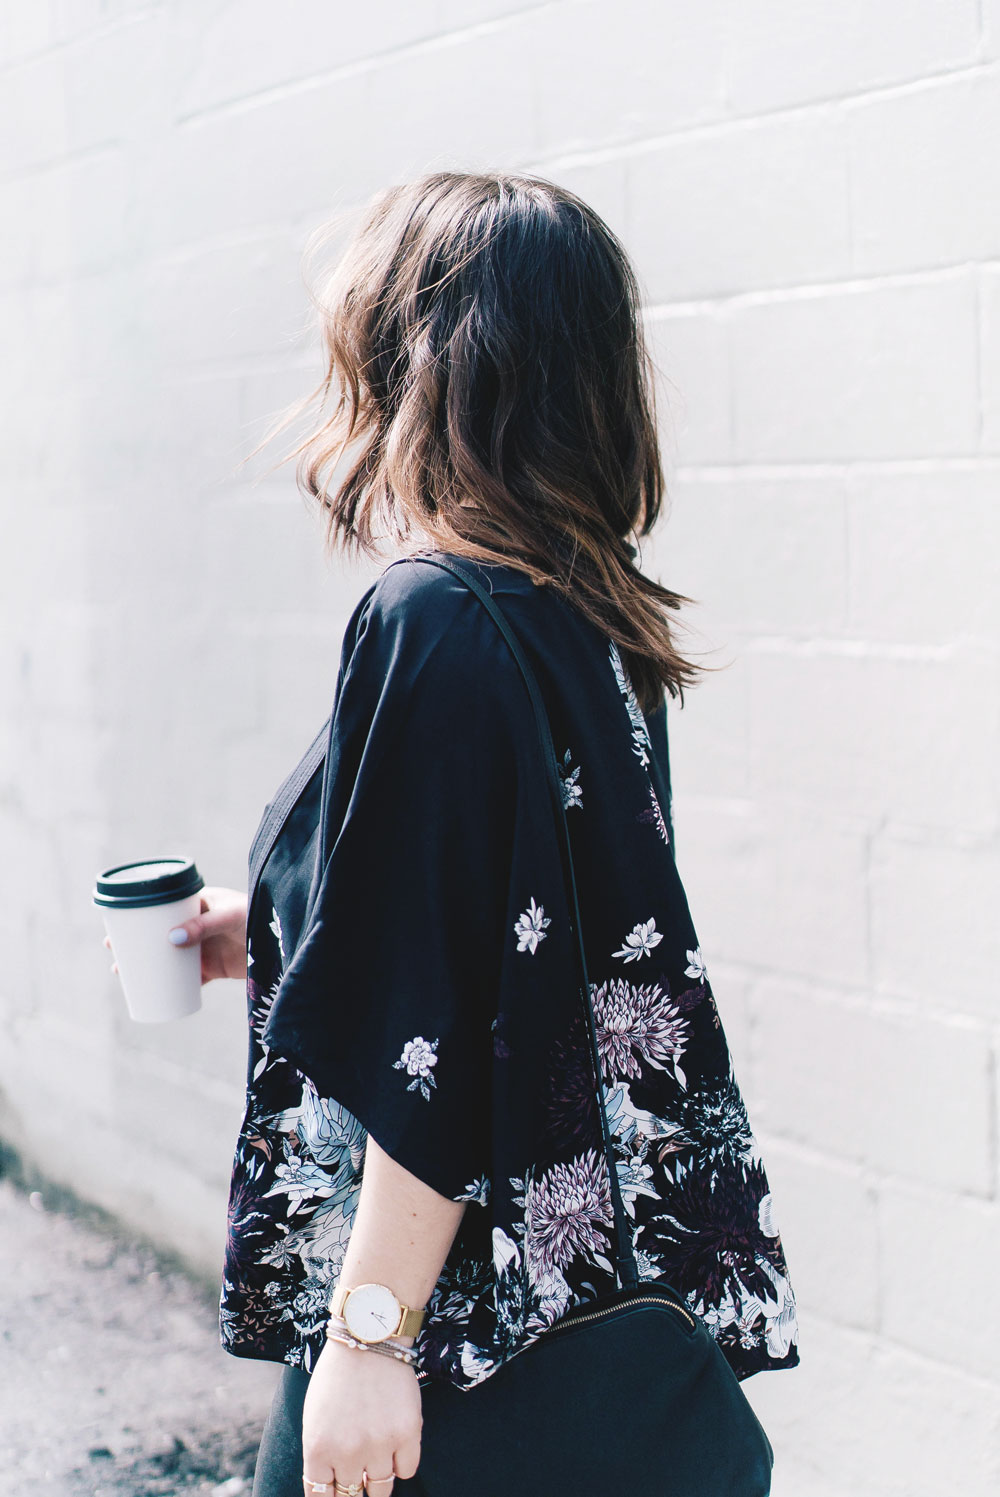 Spring floral trend styling tips in Aritzia Kimono, Celine Sunglasses, Aritzia Leather Leggings, how to wear spring florals, Aritzia spring tops, how to wear a kimono, Leah Alexandra jewelry by To Vogue or Bust